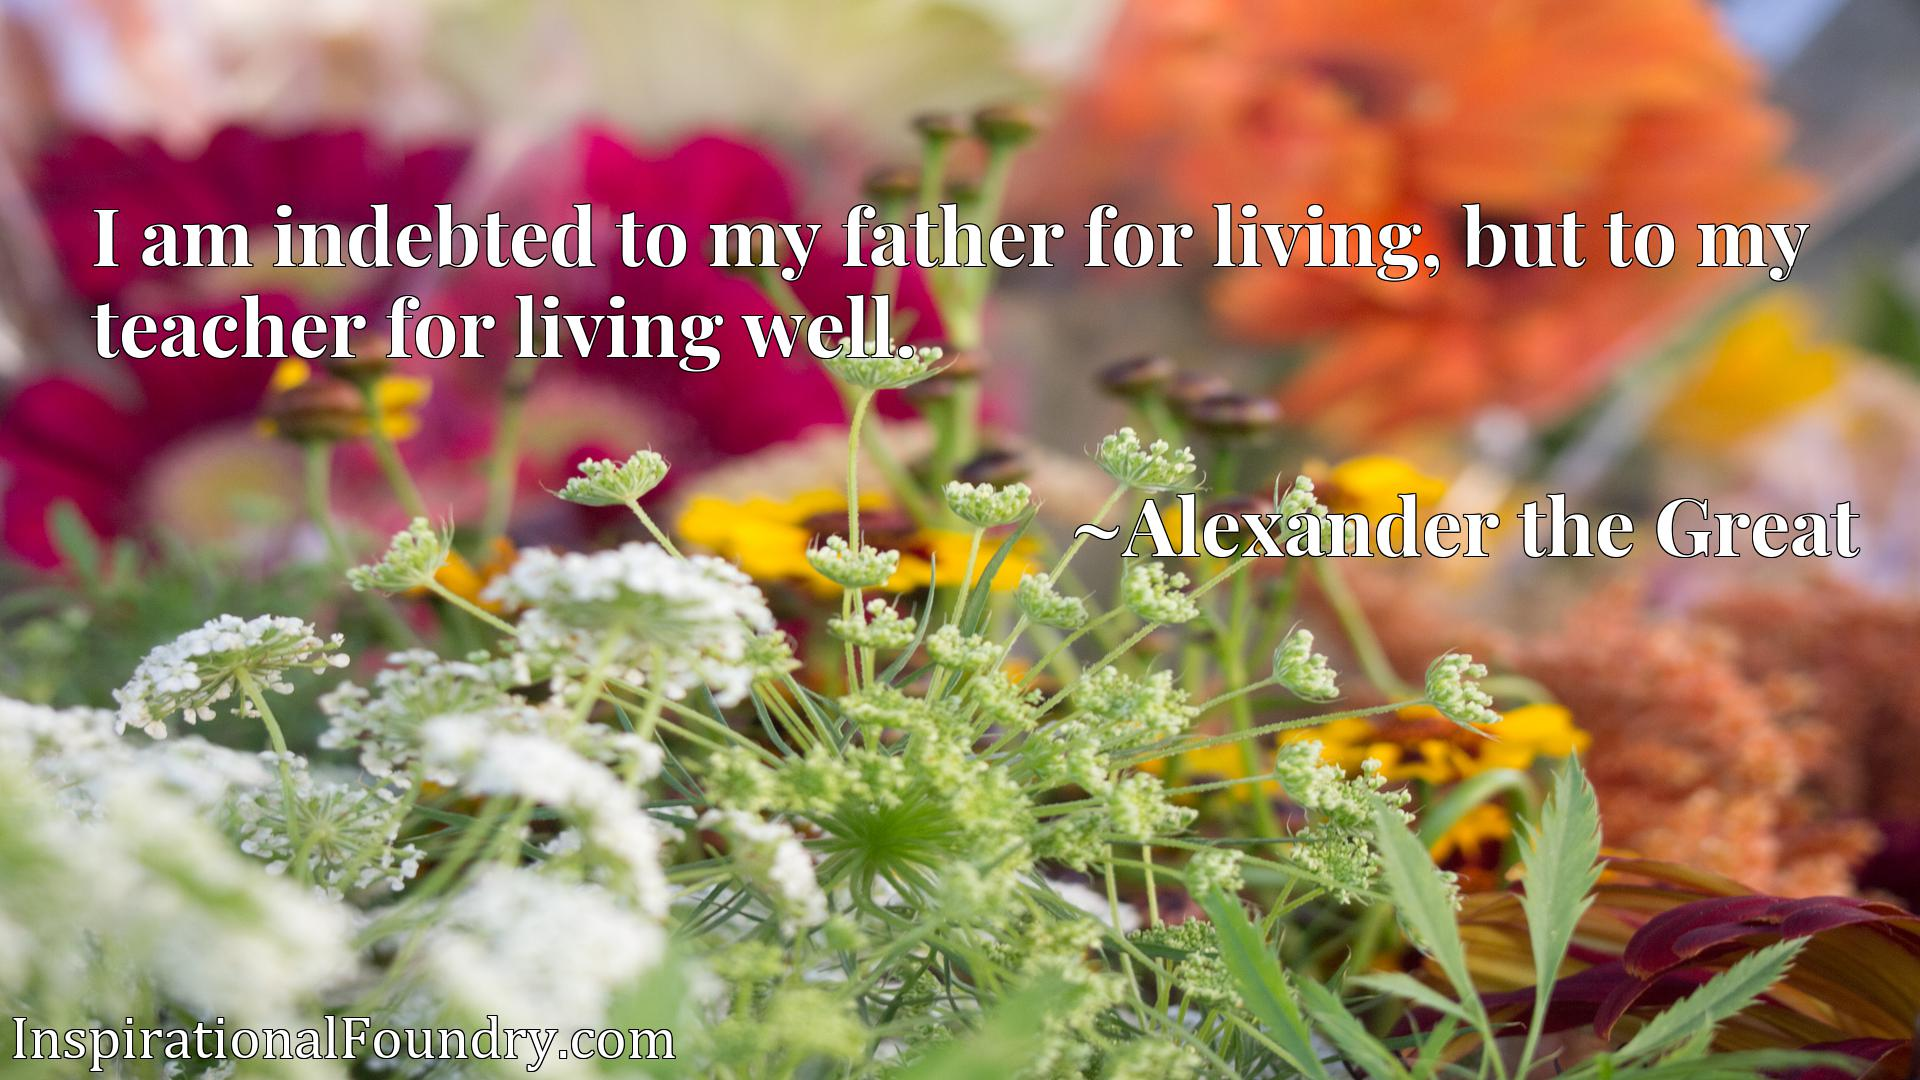 I am indebted to my father for living, but to my teacher for living well.